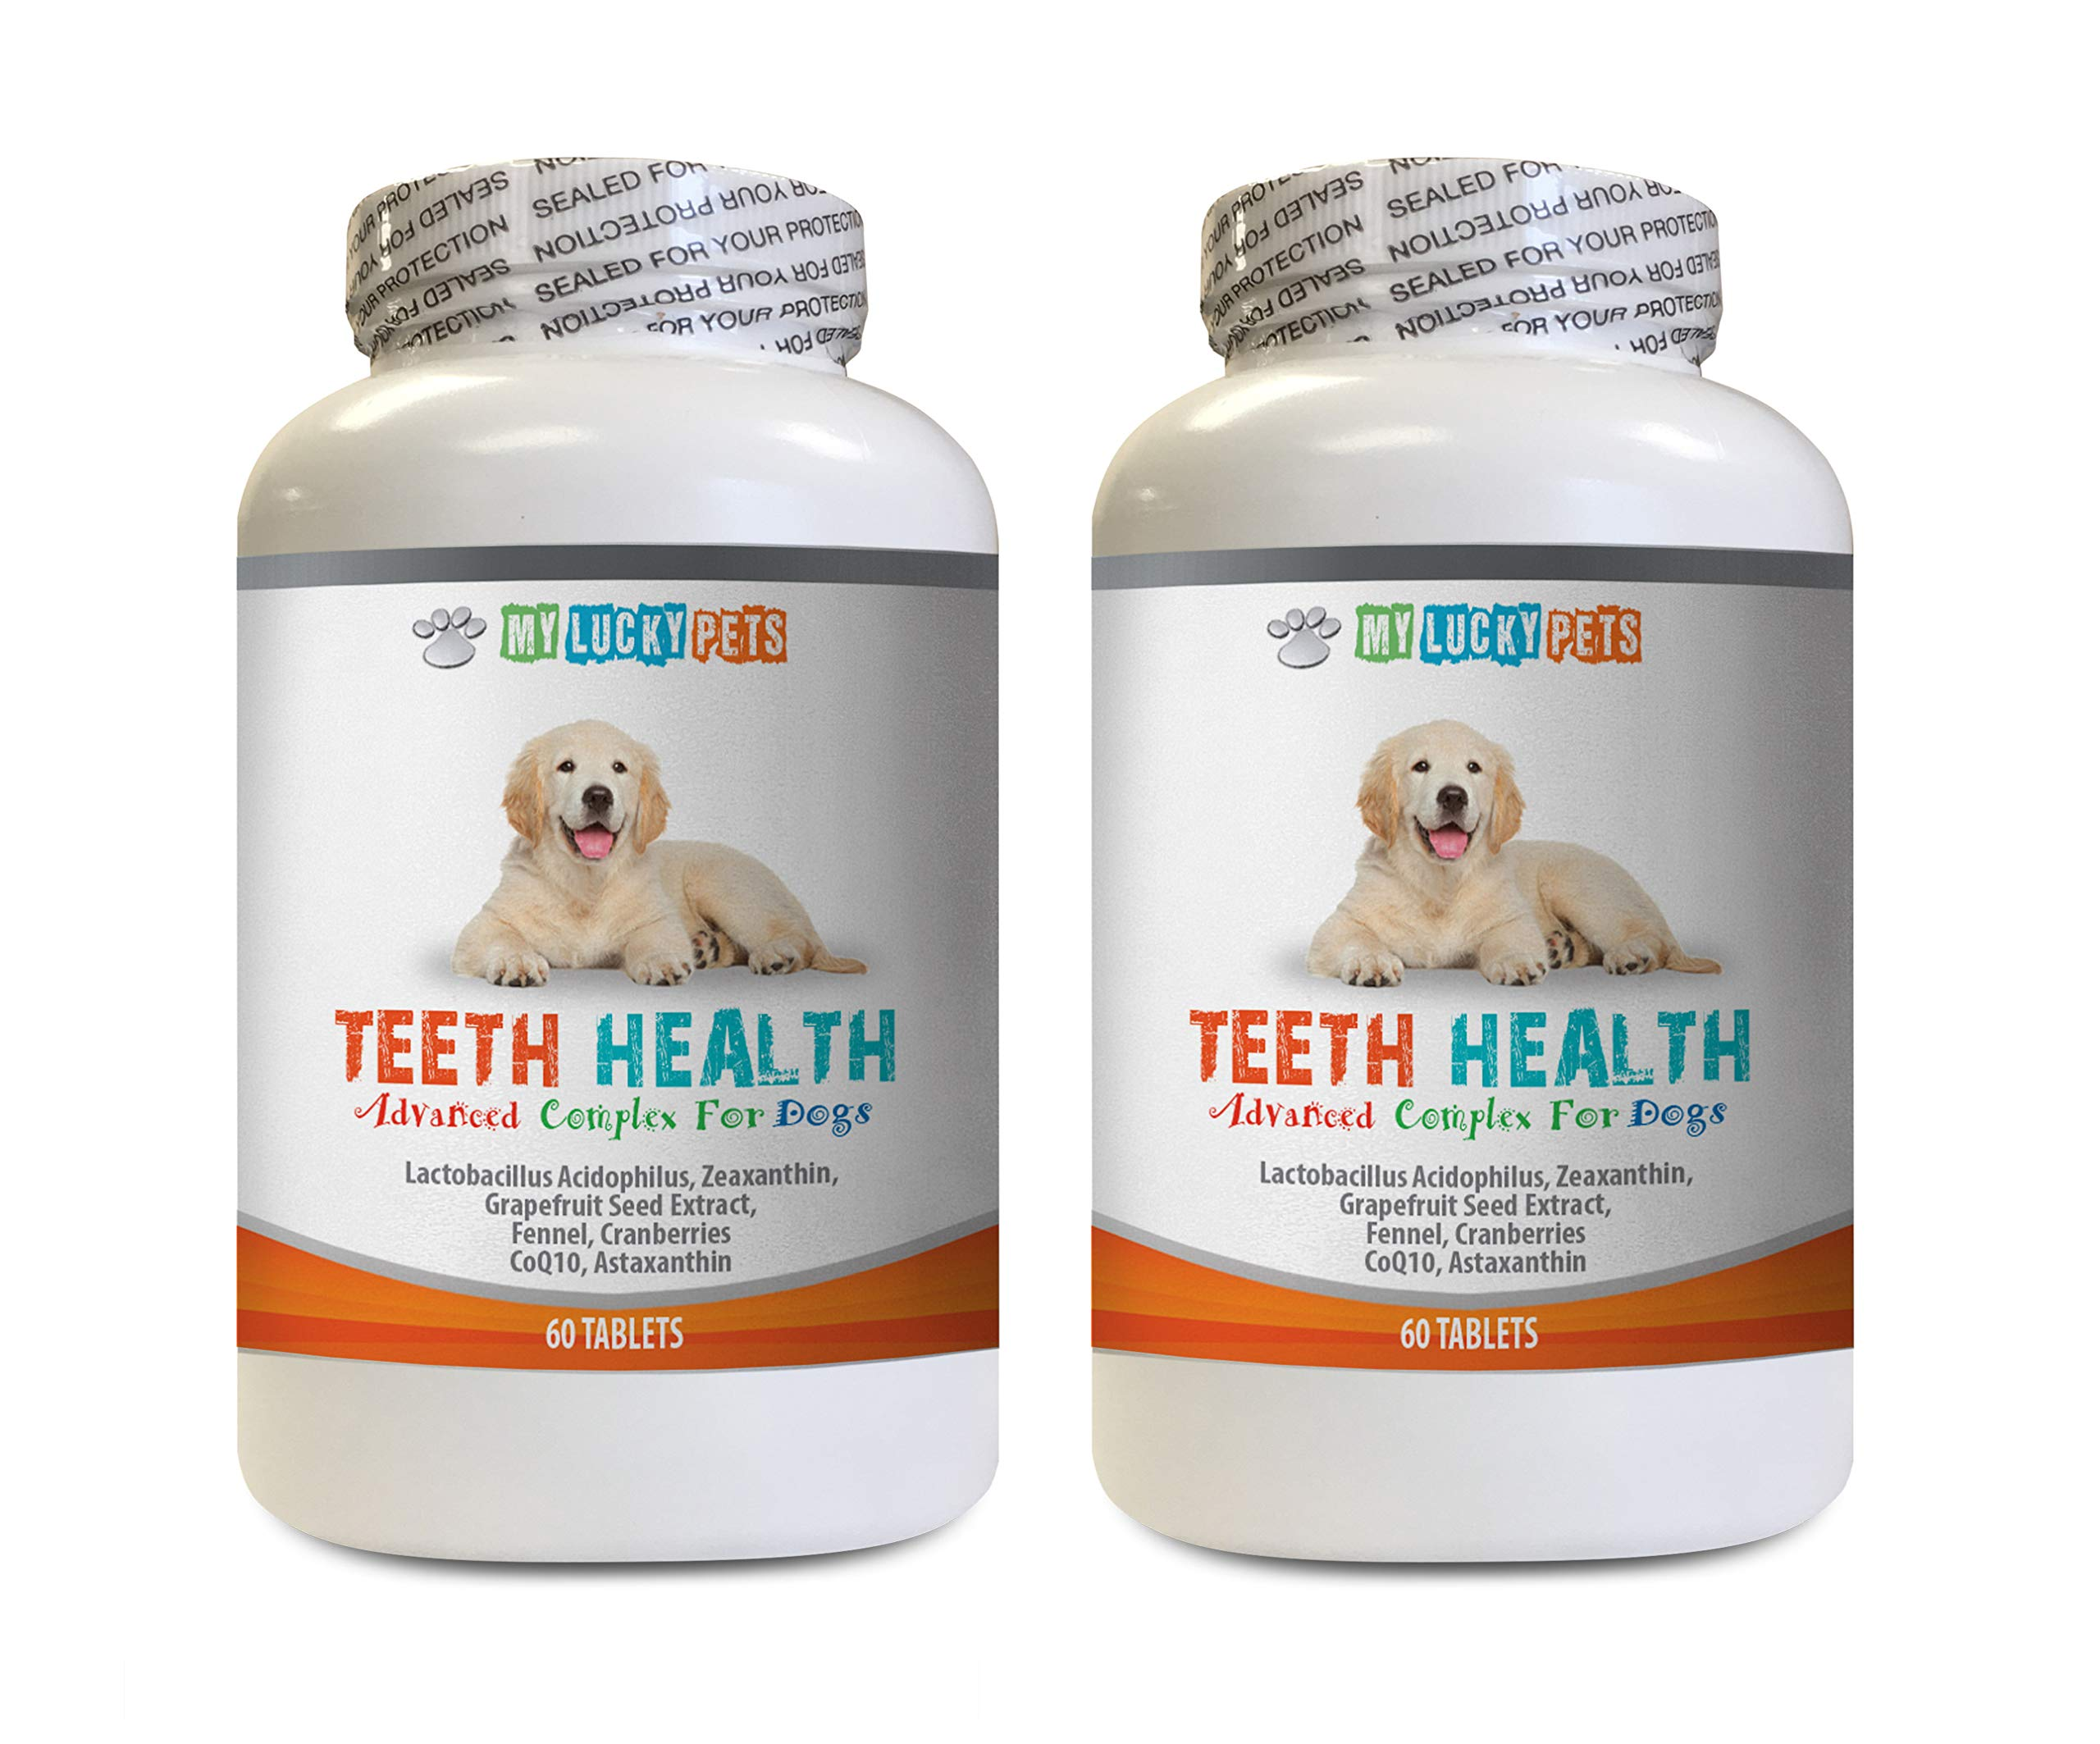 MY LUCKY PETS LLC Dog Breath Tablets - Advanced Teeth Health for Dogs - Fights Bad Breath - Best Looking Gums and Teeth - Grapefruit Seed Extract for Dogs - 120 Tablets (2 Bottles) by MY LUCKY PETS LLC